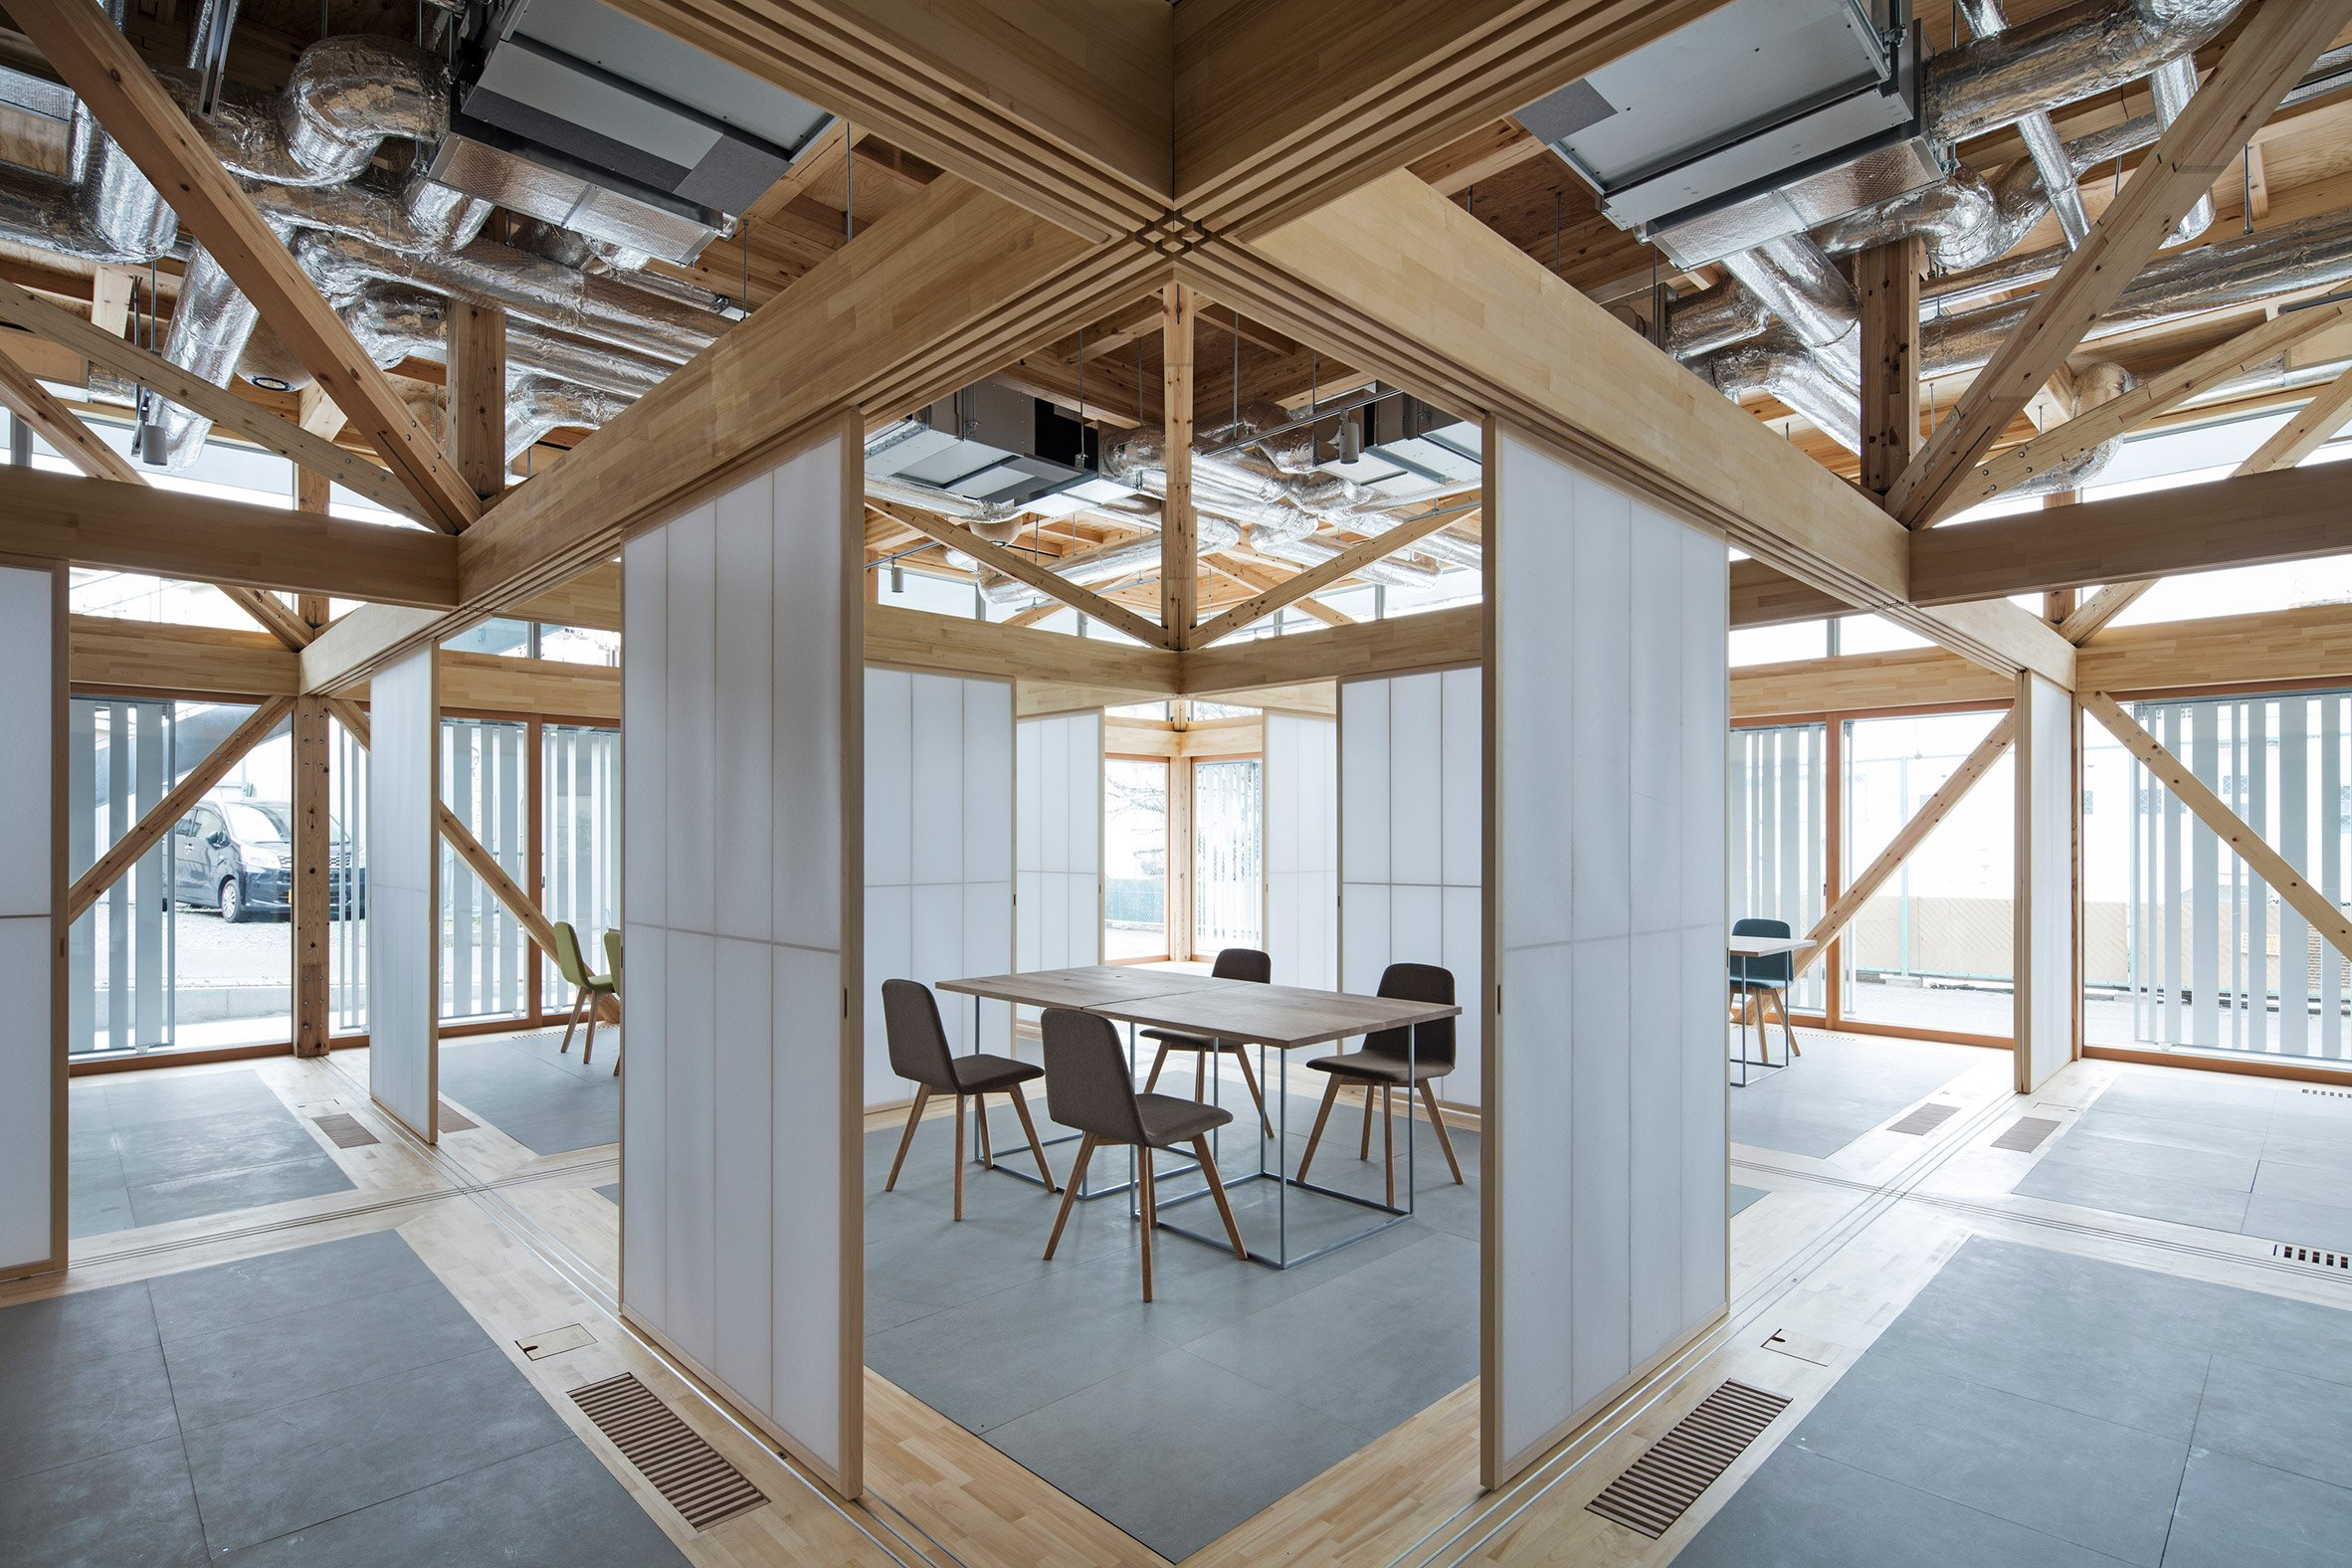 Removable walls offer endless configurations for community space by Aki Hamada